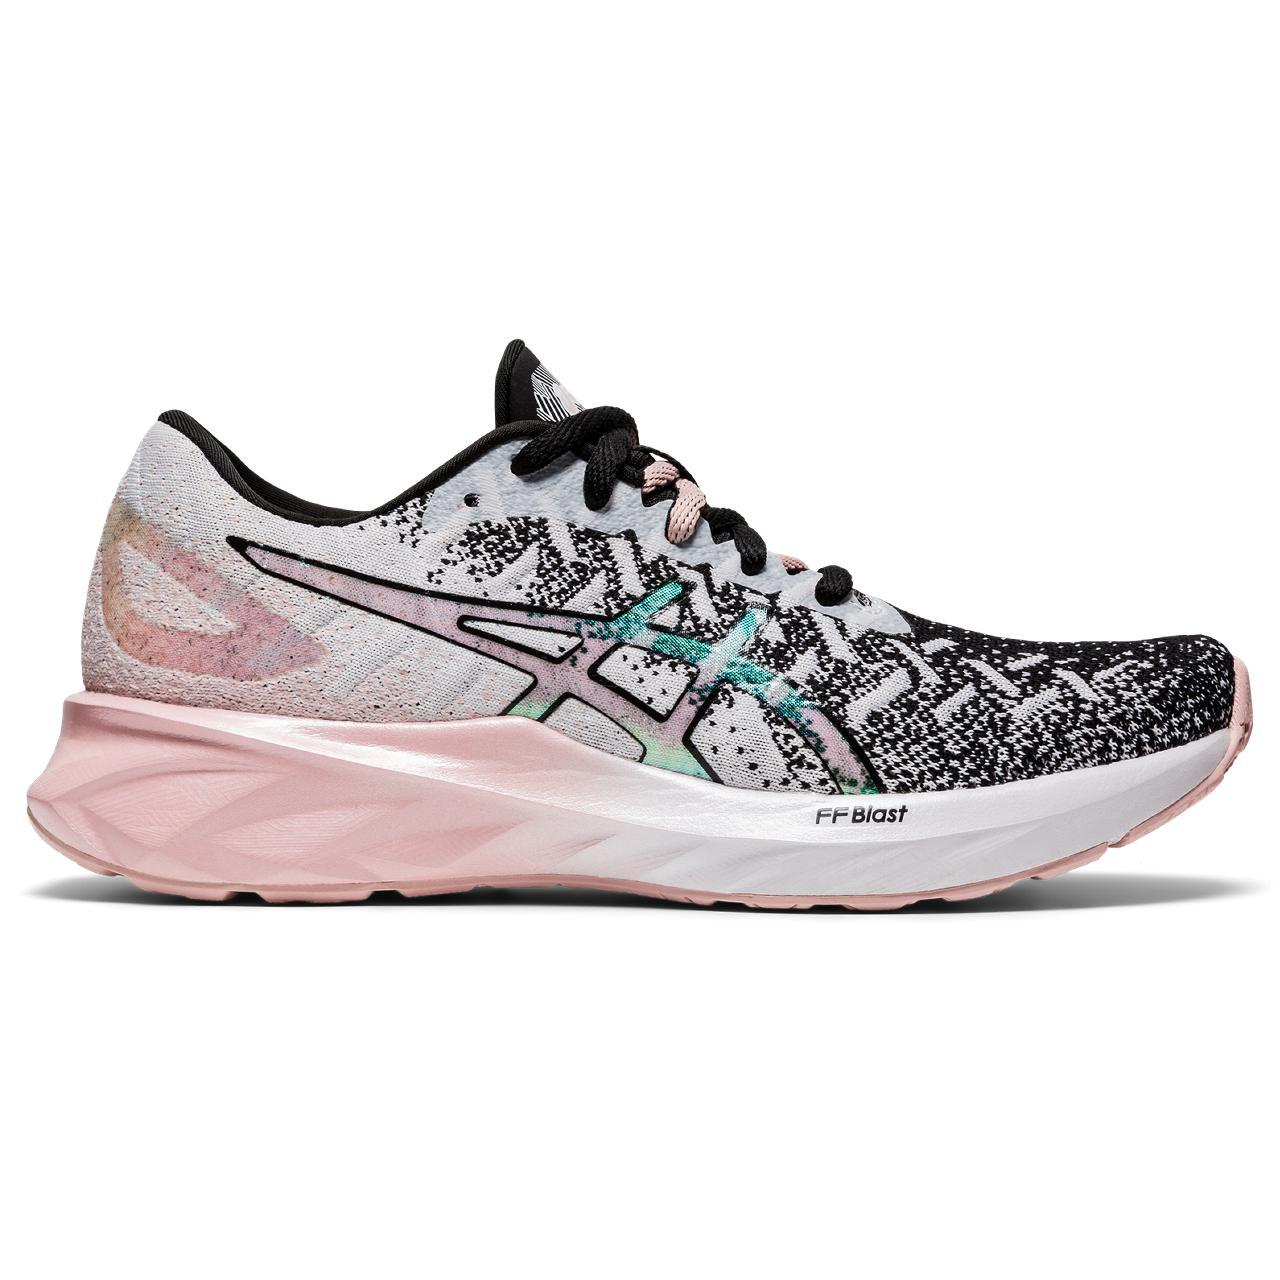 Asics Women's Dynablast - New Strong - BlackToe Running Inc. - Toronto Running Specialty Store